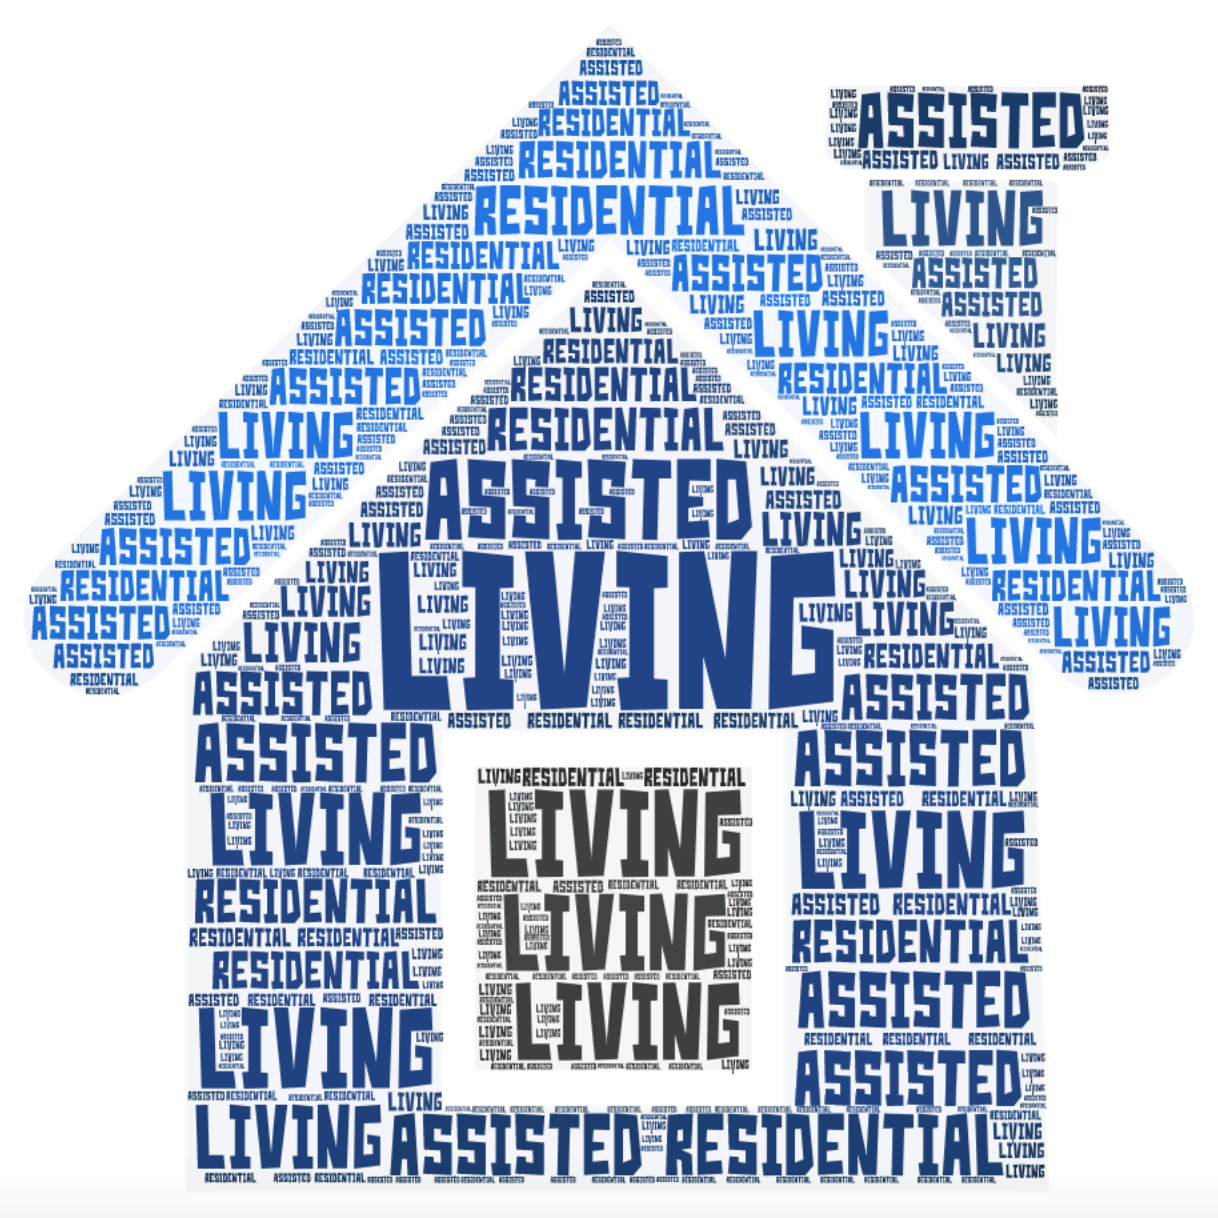 Association forms for small assisted living operators